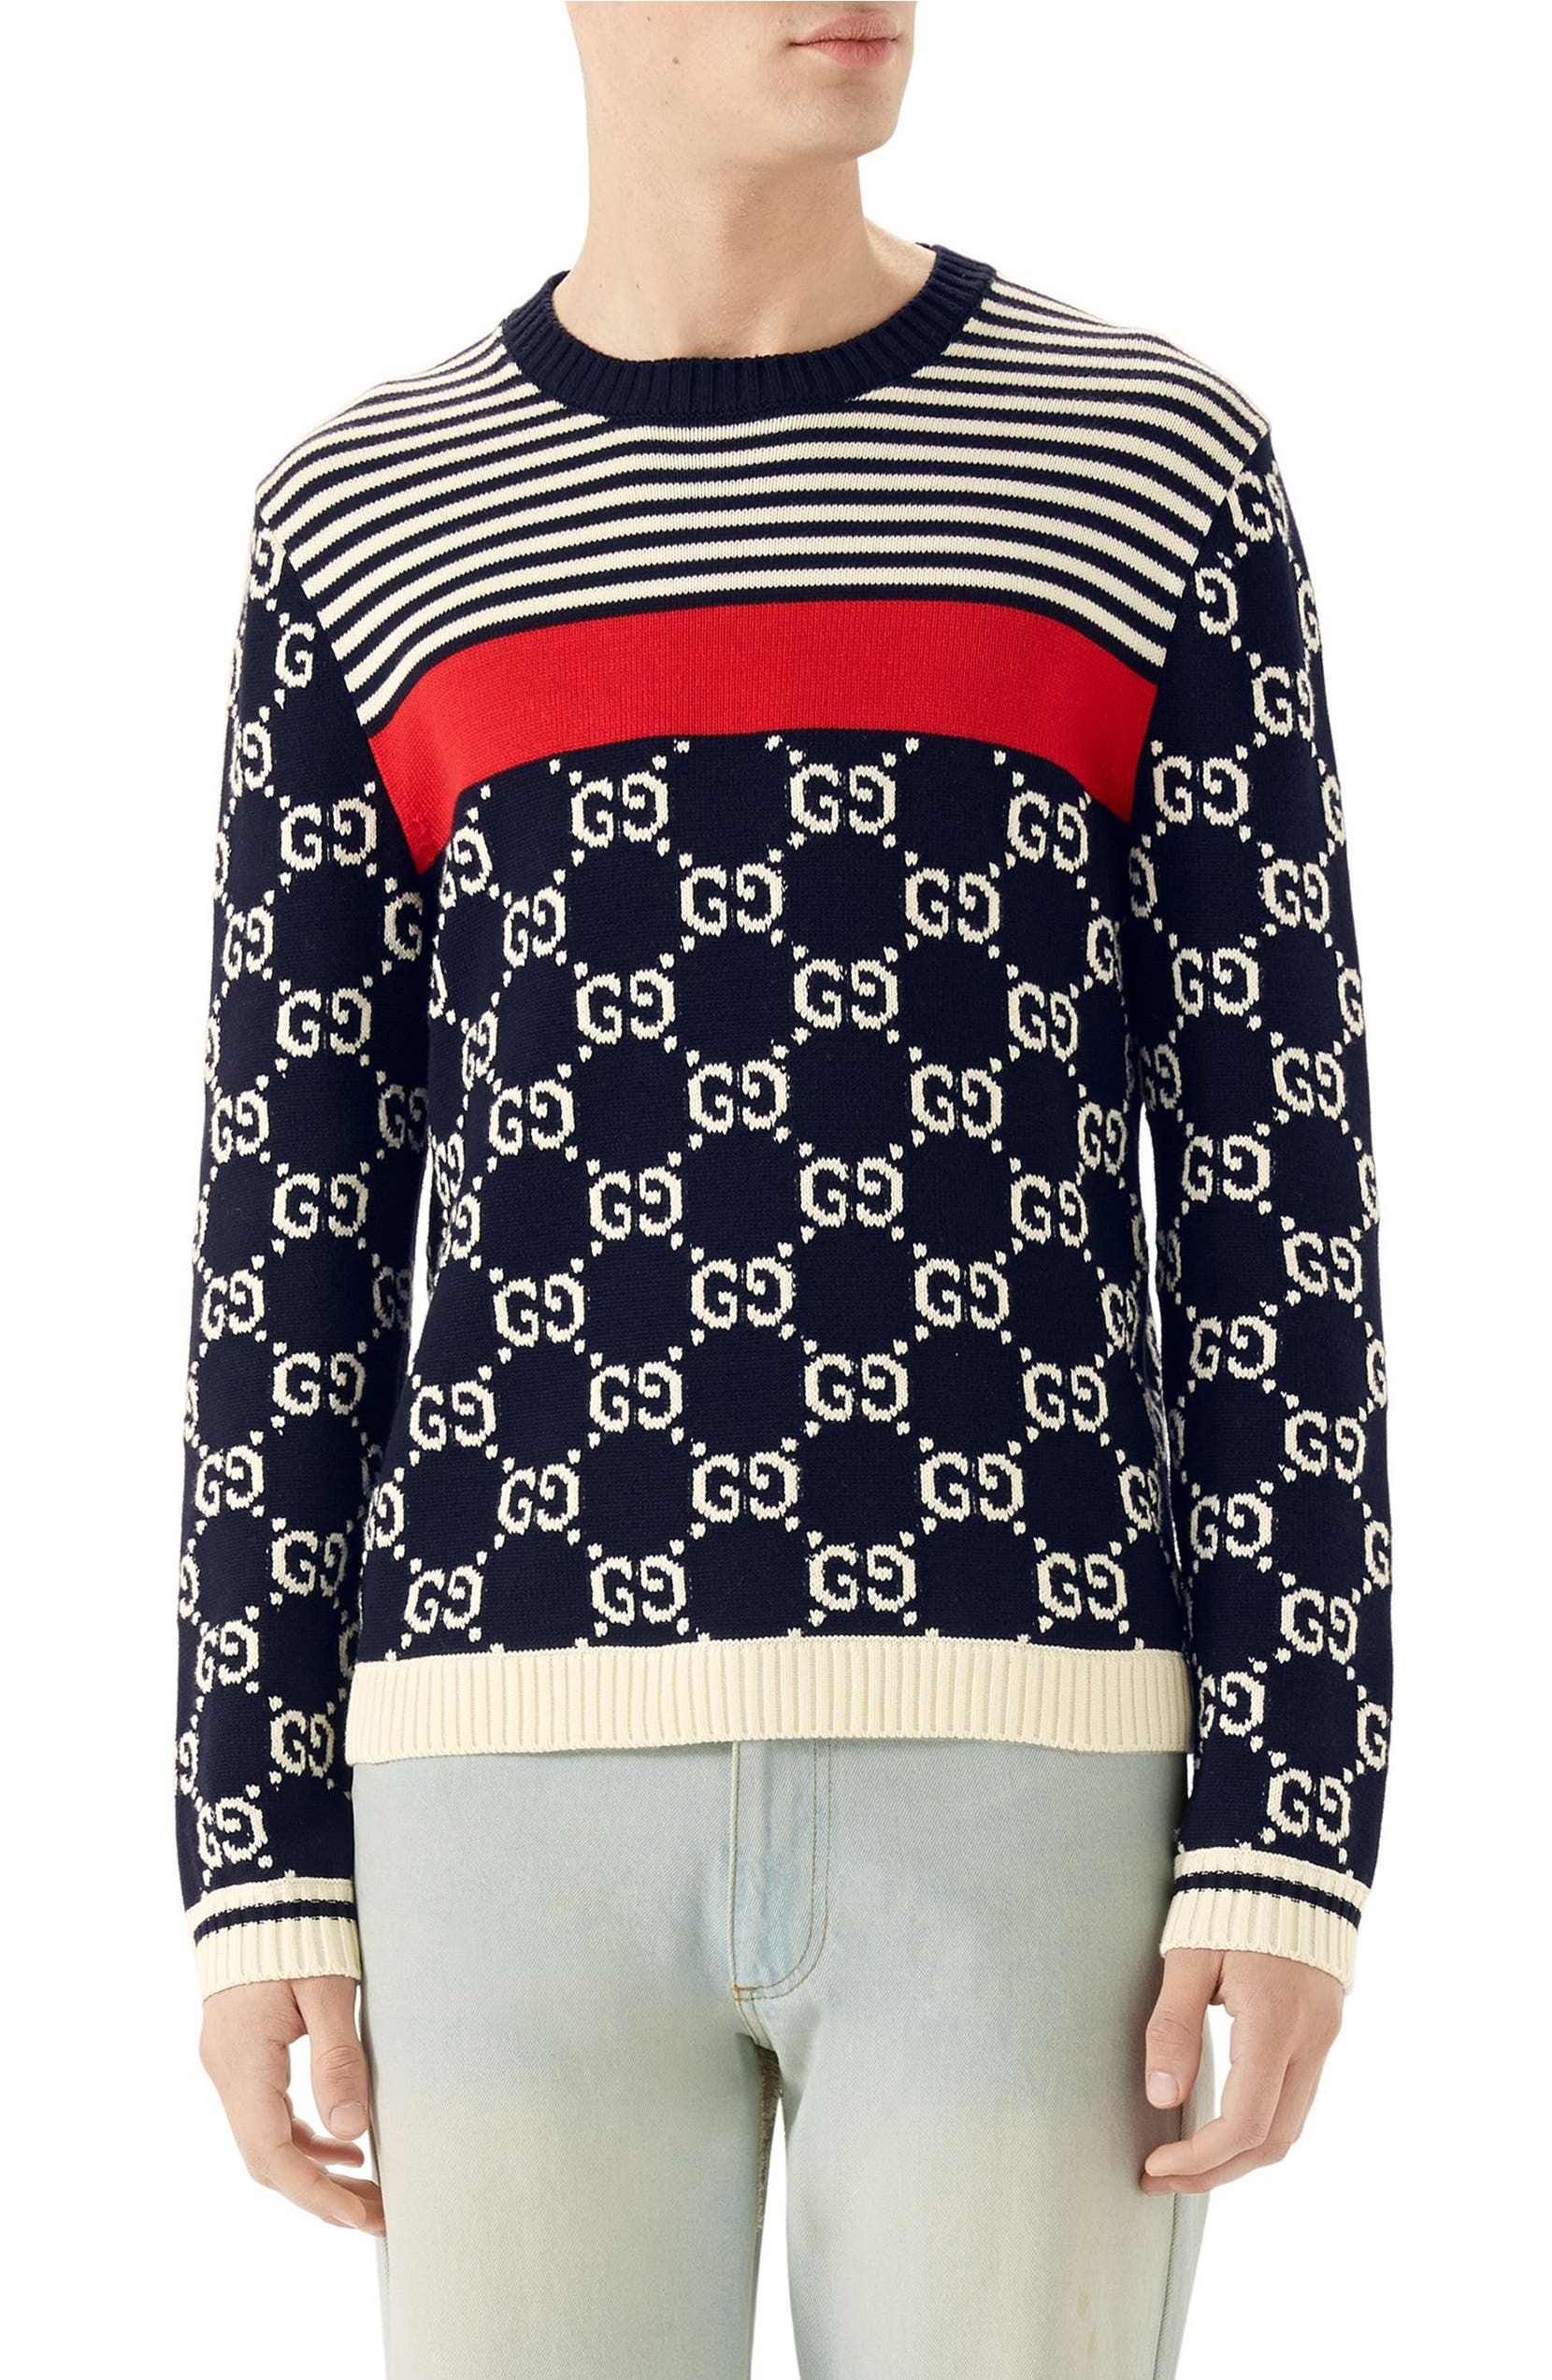 b92c4764c6c Gucci Stripe   Double-G Crewneck Sweater